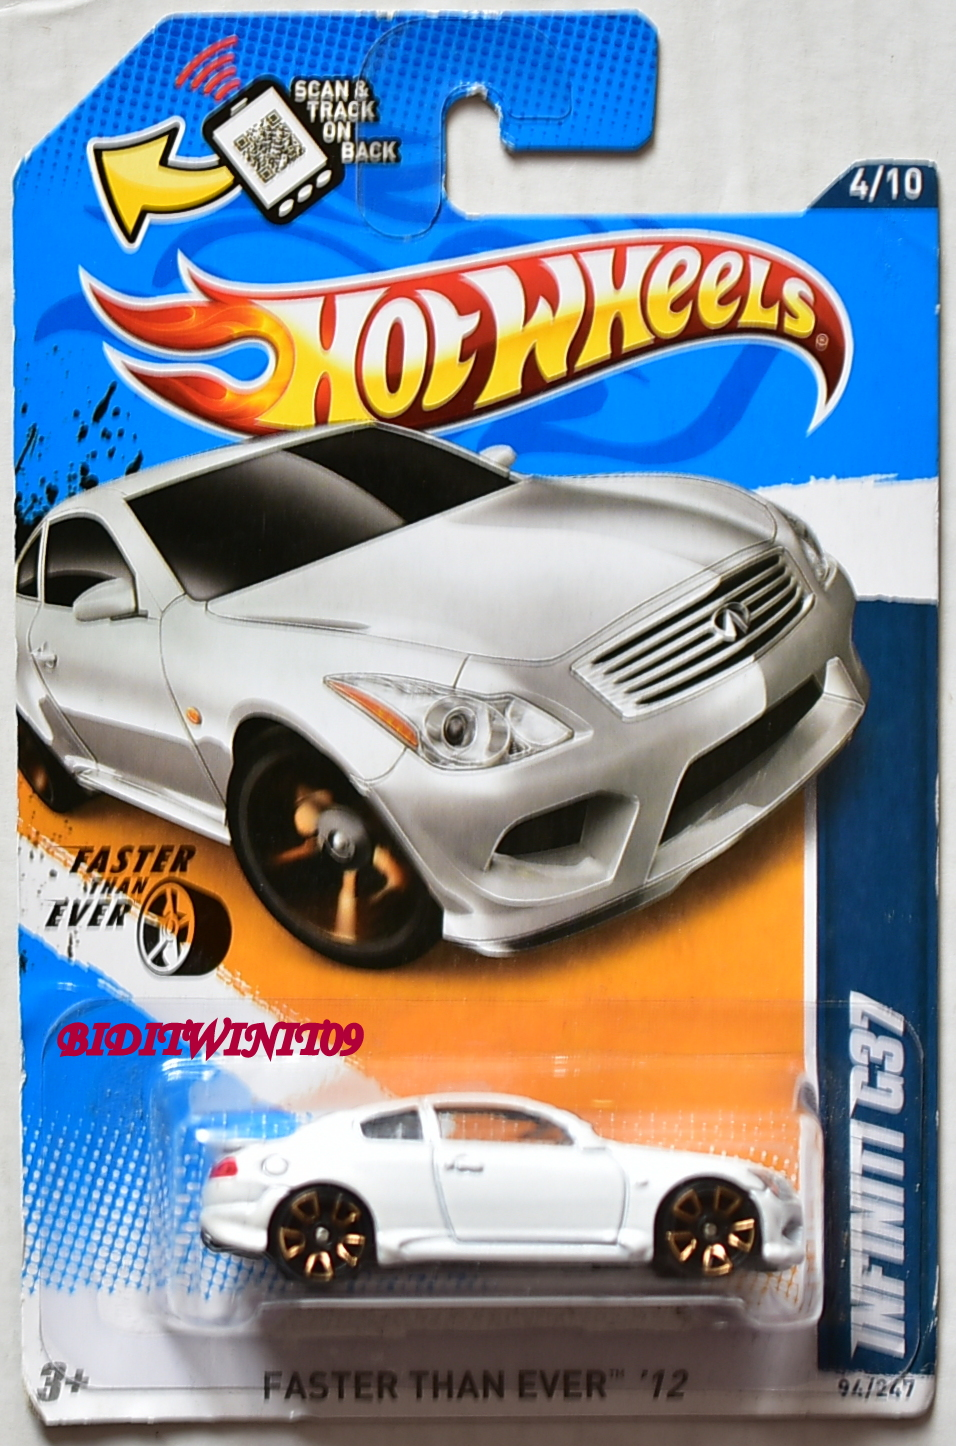 HOT WHEELS 2012 FASTER THAN EVER INFINITI G37 #4/10 WHITE